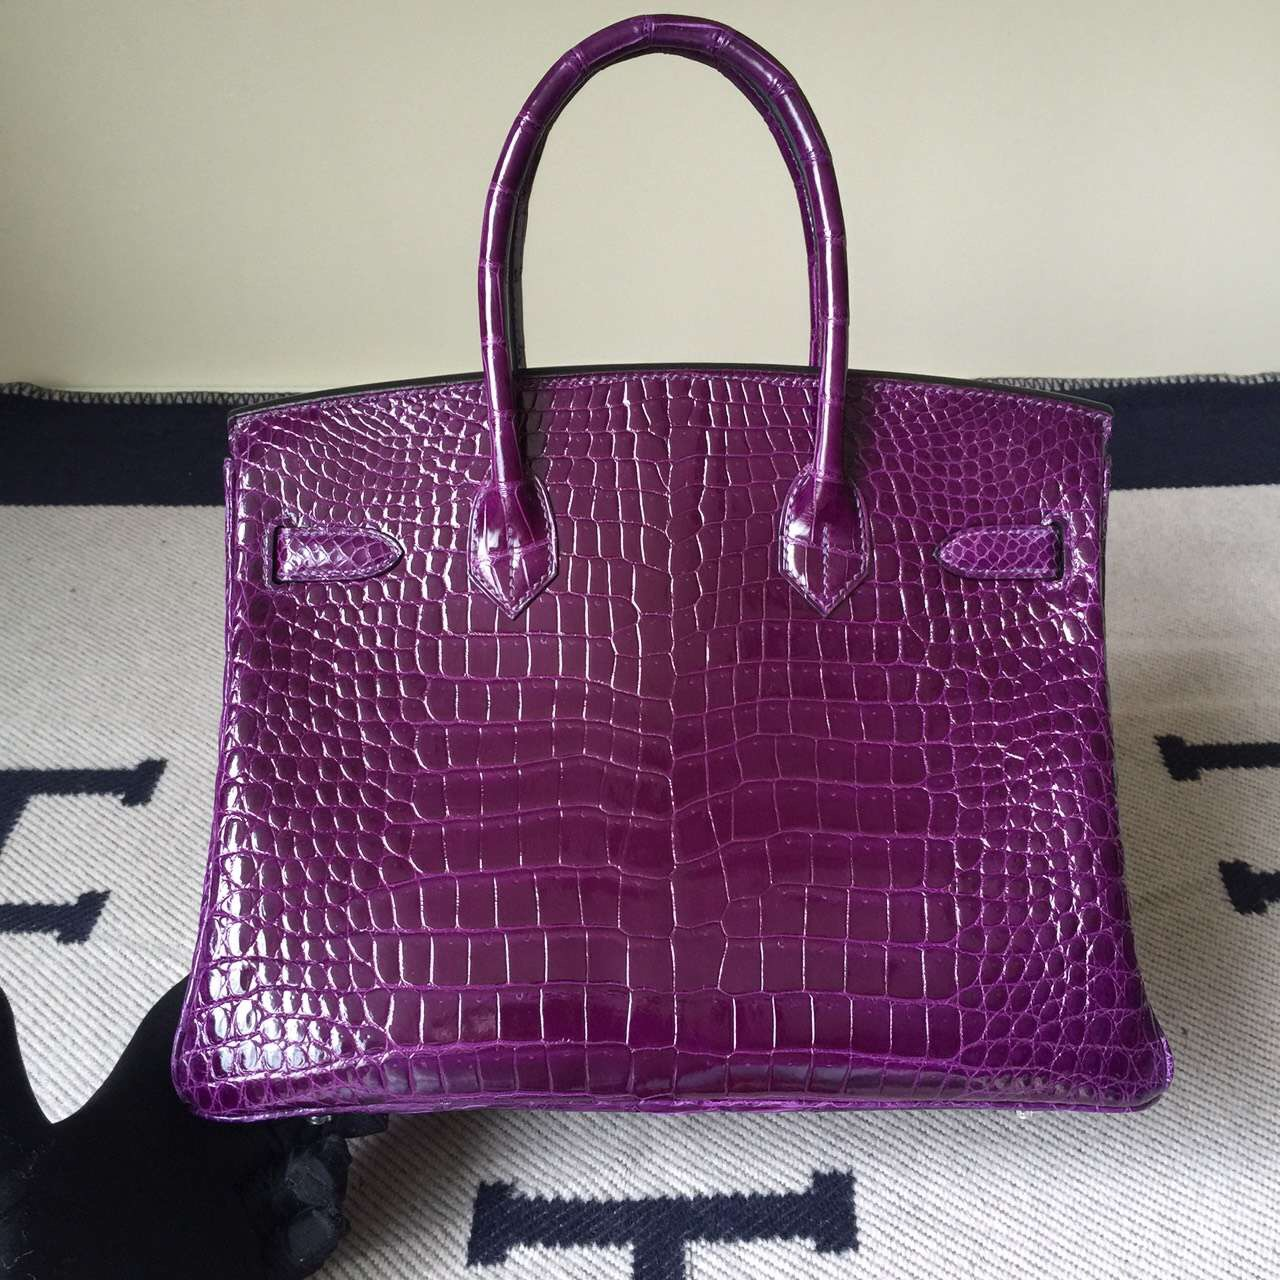 Discount Hermes 9G Violet Crocodile Leather Bikrin Bag 25cm Silver Hardware